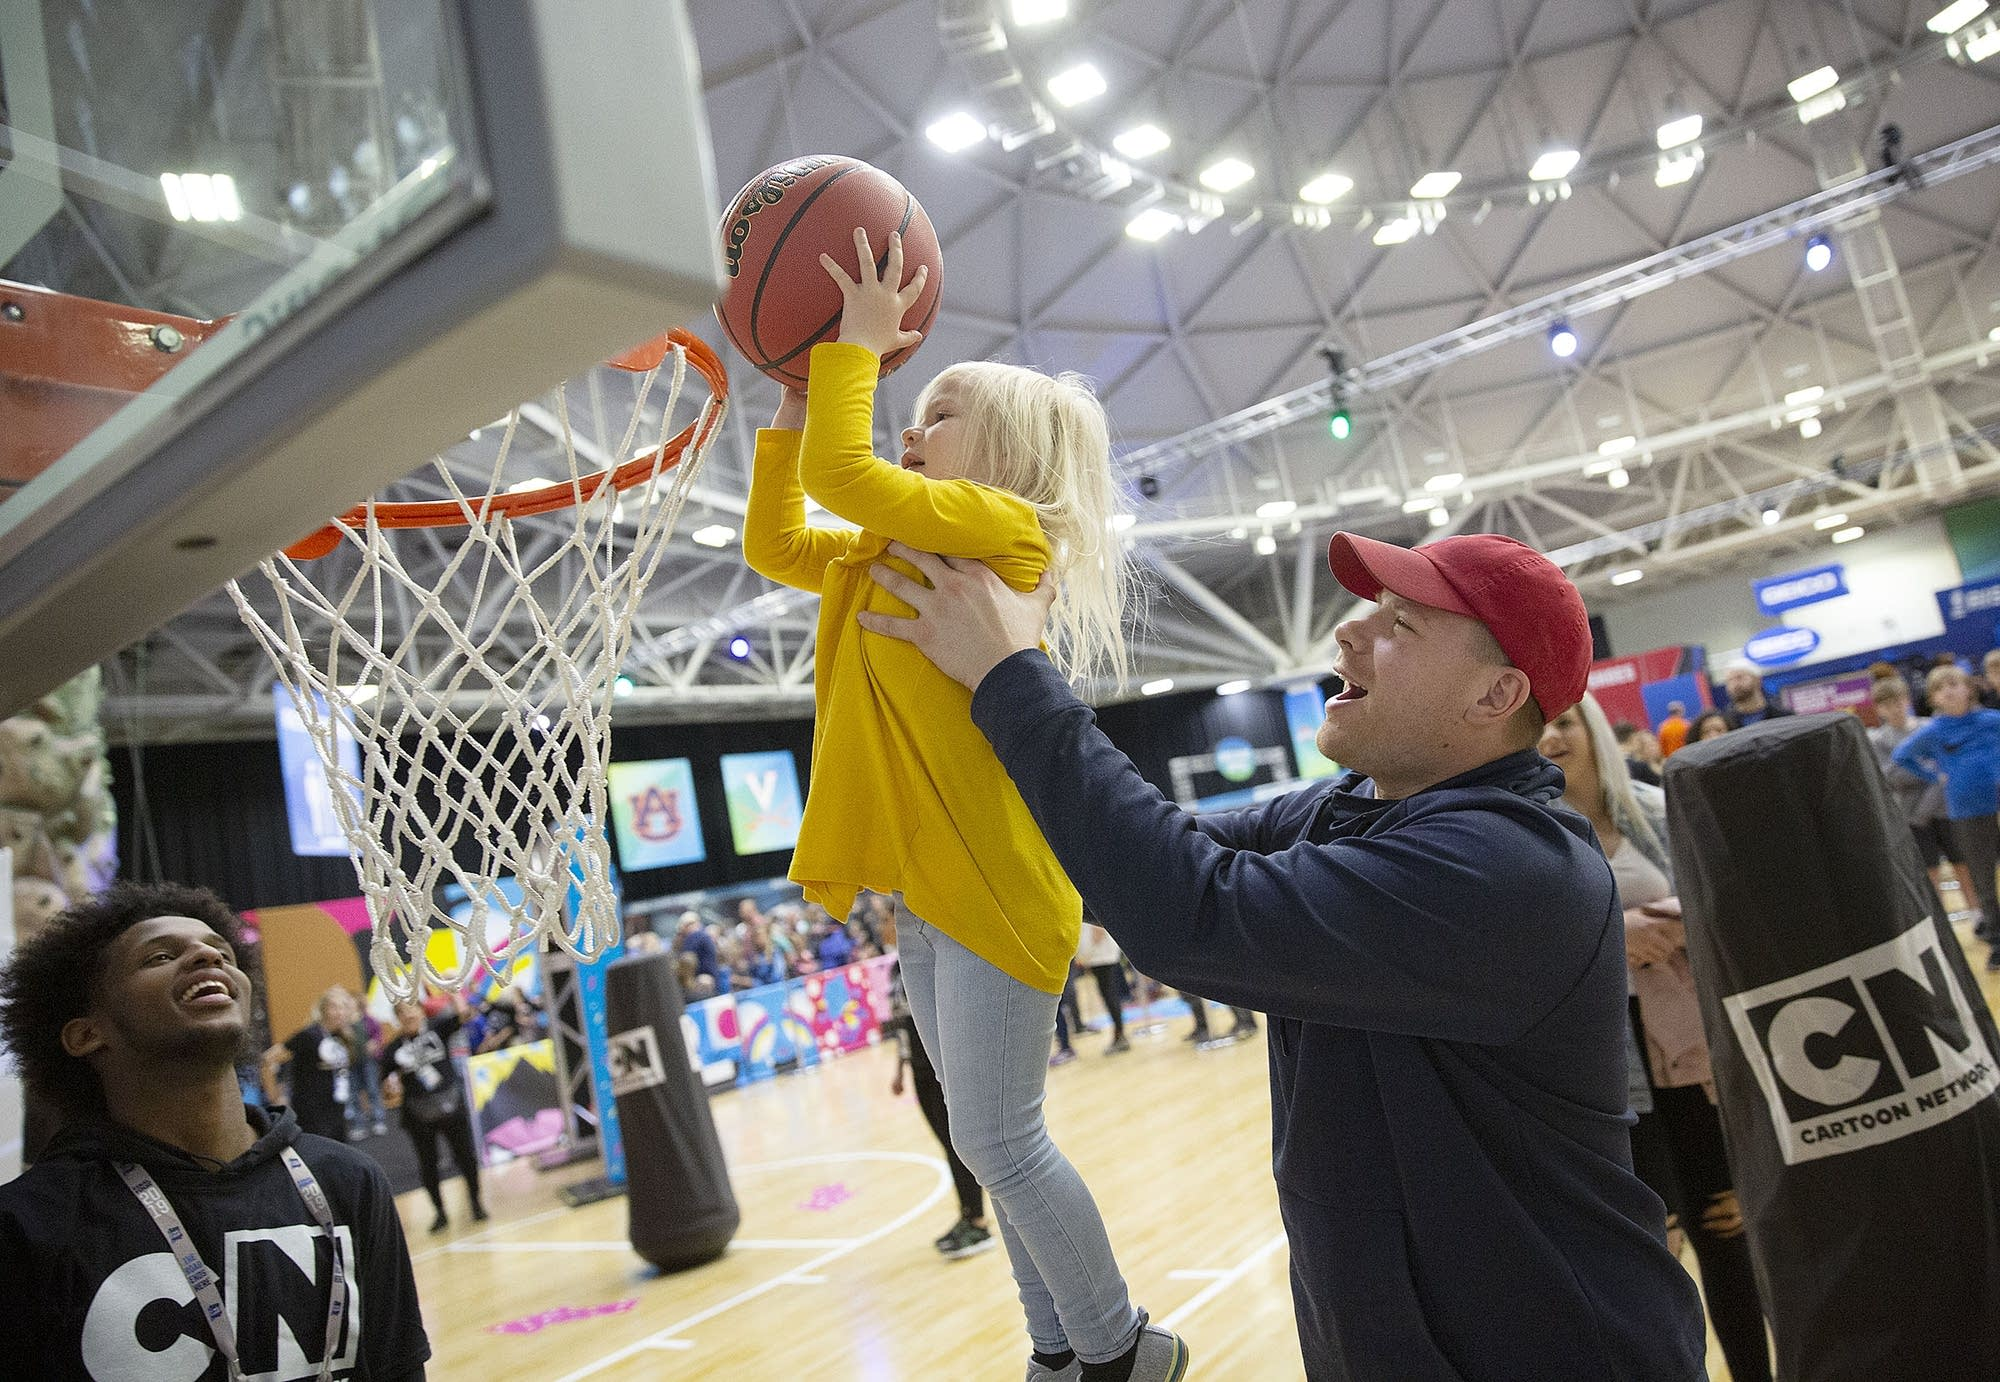 Victor Vondracek helps his 3-year-old daughter, Braelyn, dunk the ball.